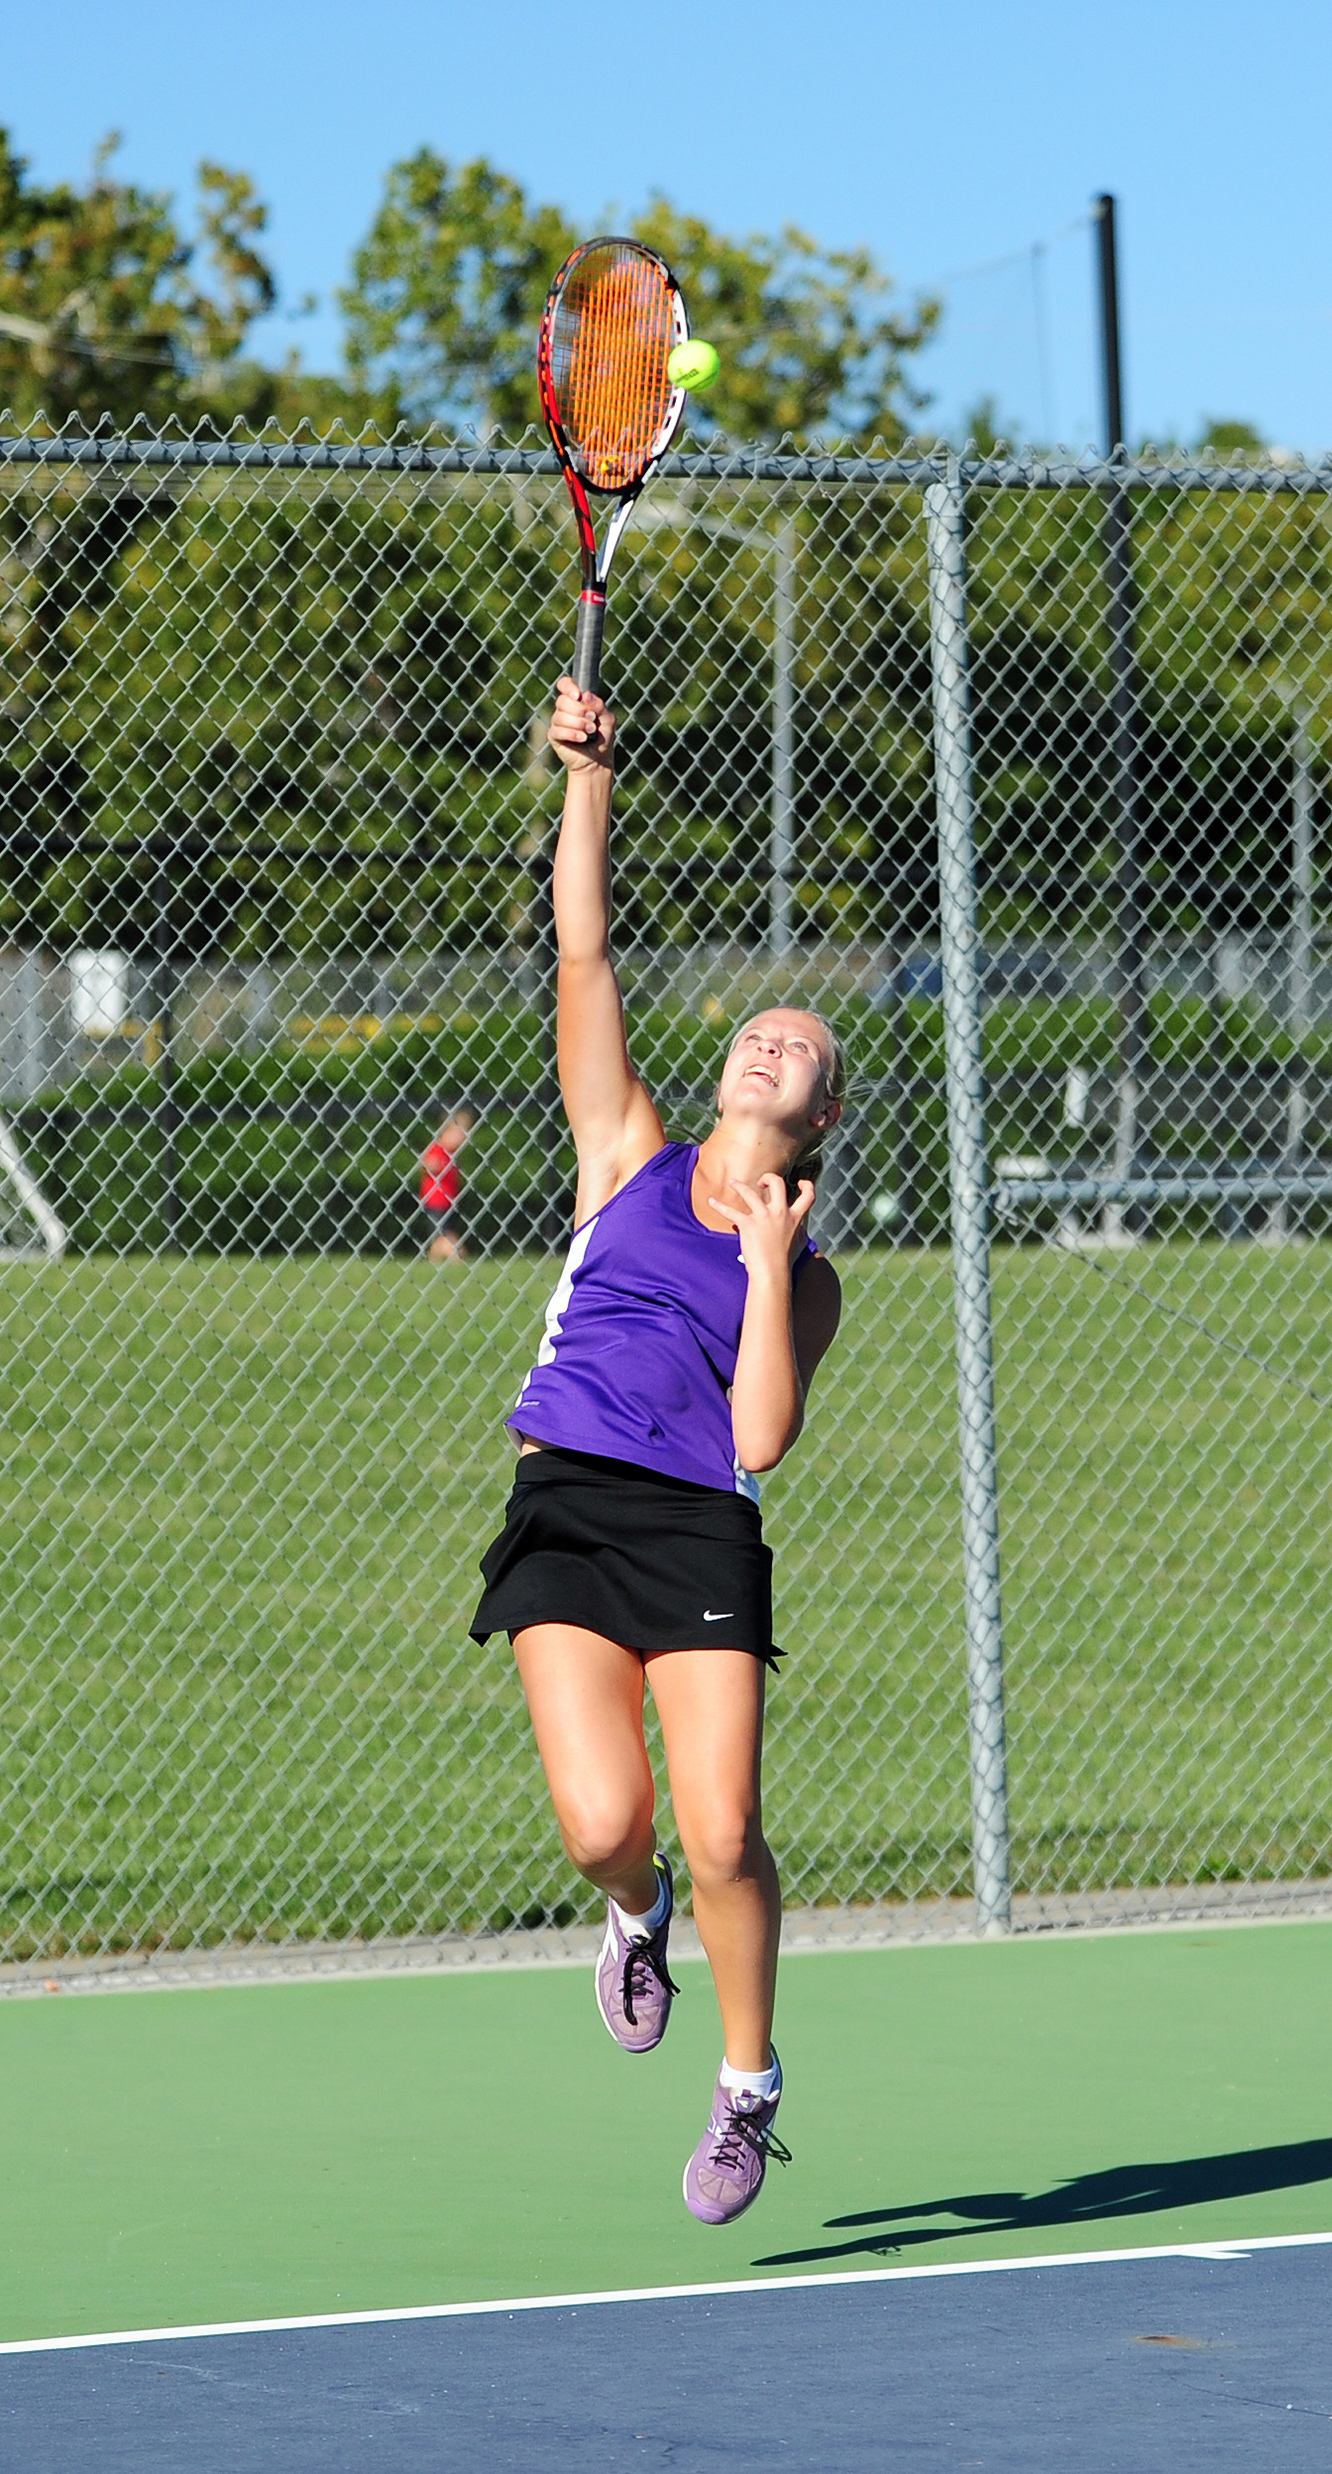 NICK INGRAM/Citizen photo Park Hill South freshman Chloe Norris hits a serve during a Class 2 District 15 semifinal dual with Park Hill on Tuesday, Sept. 27.